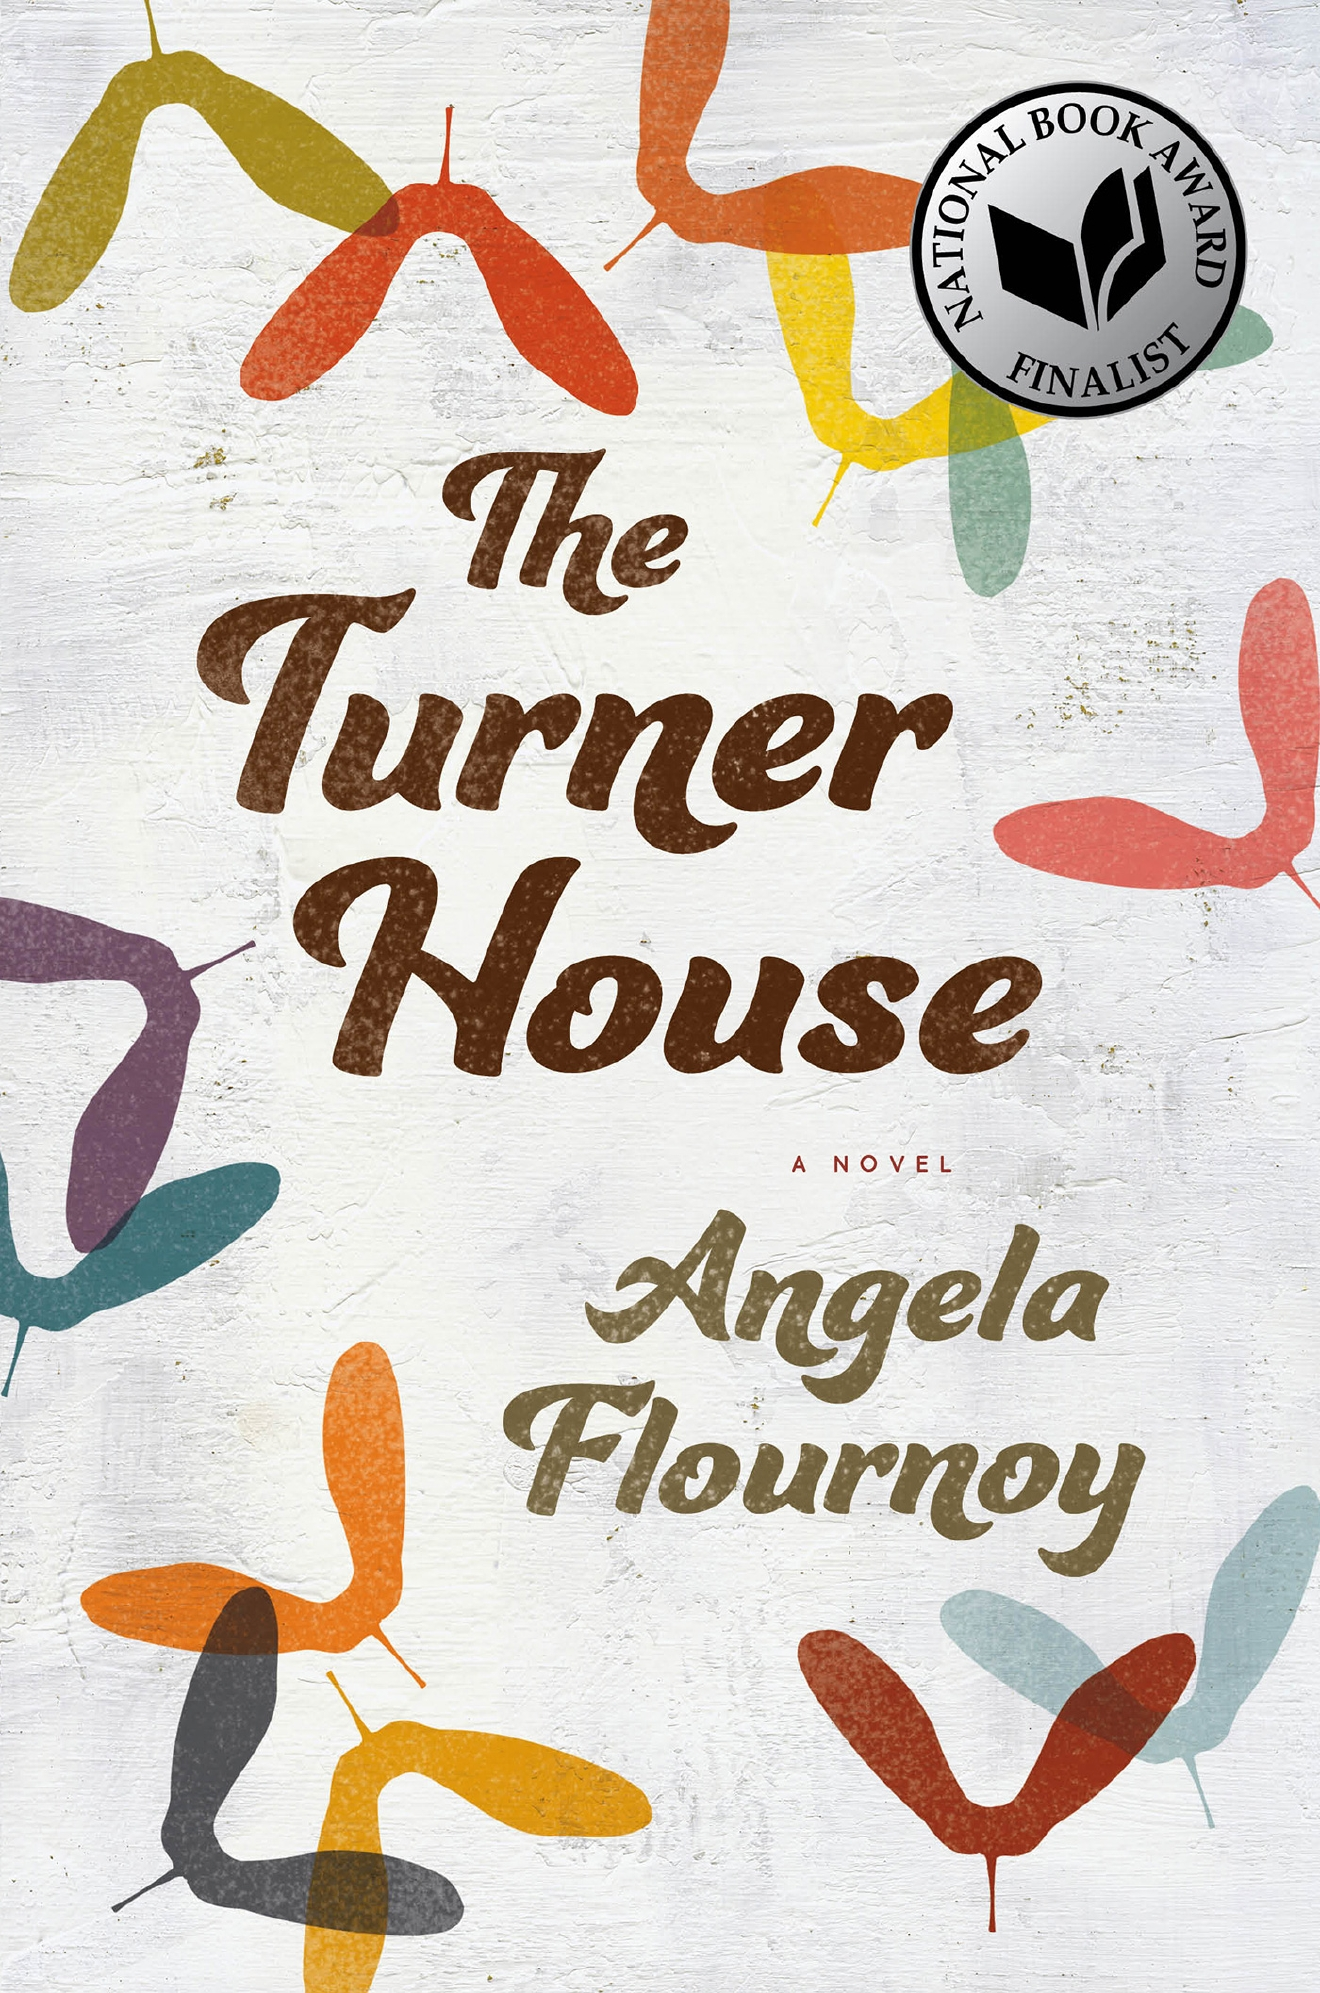 """Turner House"" by Angela Flournoy (Image: University Book Store / Houghton Mifflin Harcourt)"